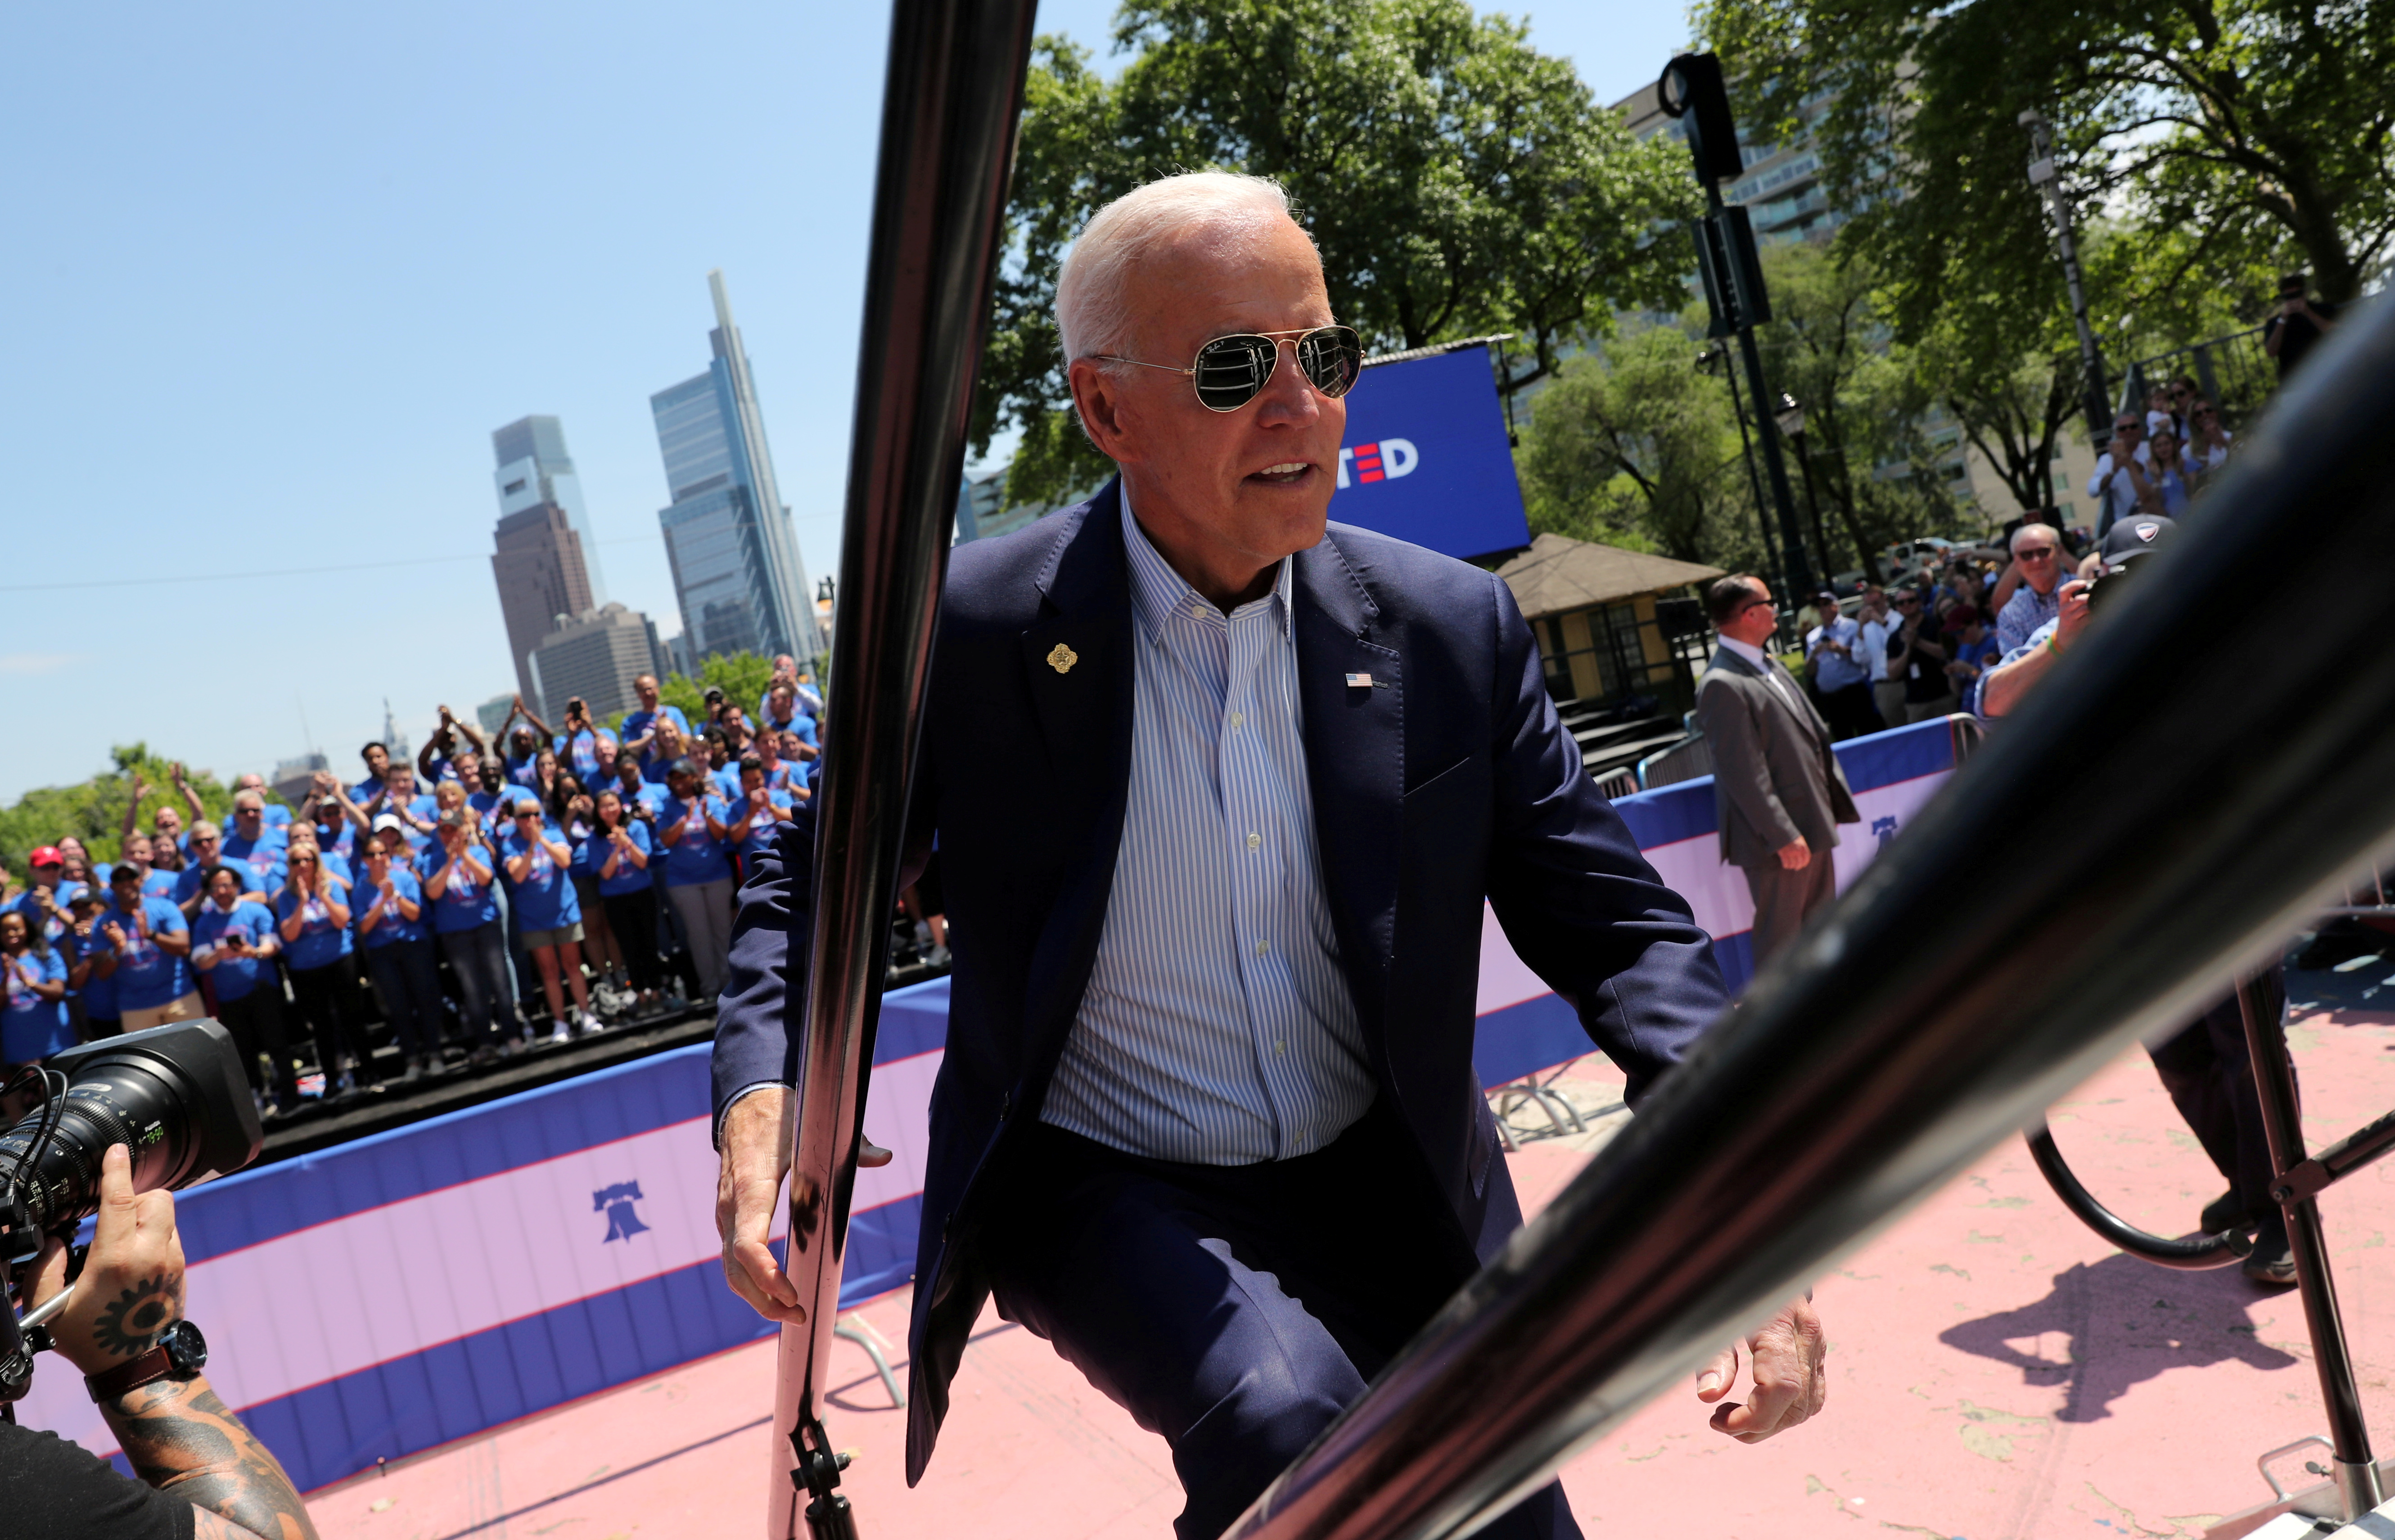 U.S. Democratic presidential candidate and former Vice President Joe Biden runs up the steps onto the stage to begin the kickoff rally of his campaign